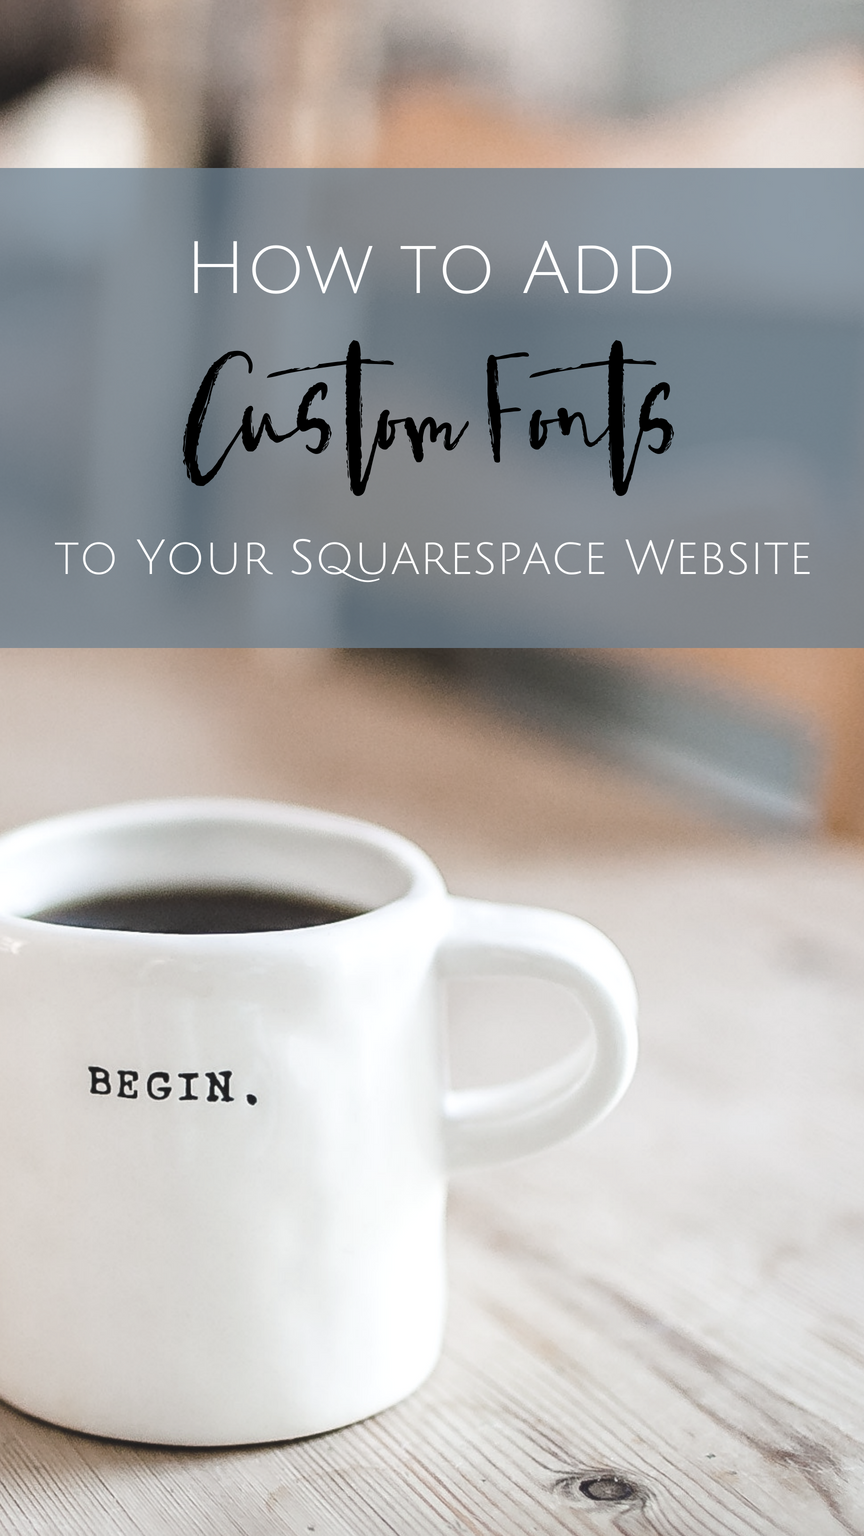 Add Custom Fonts to your Squarespace Site